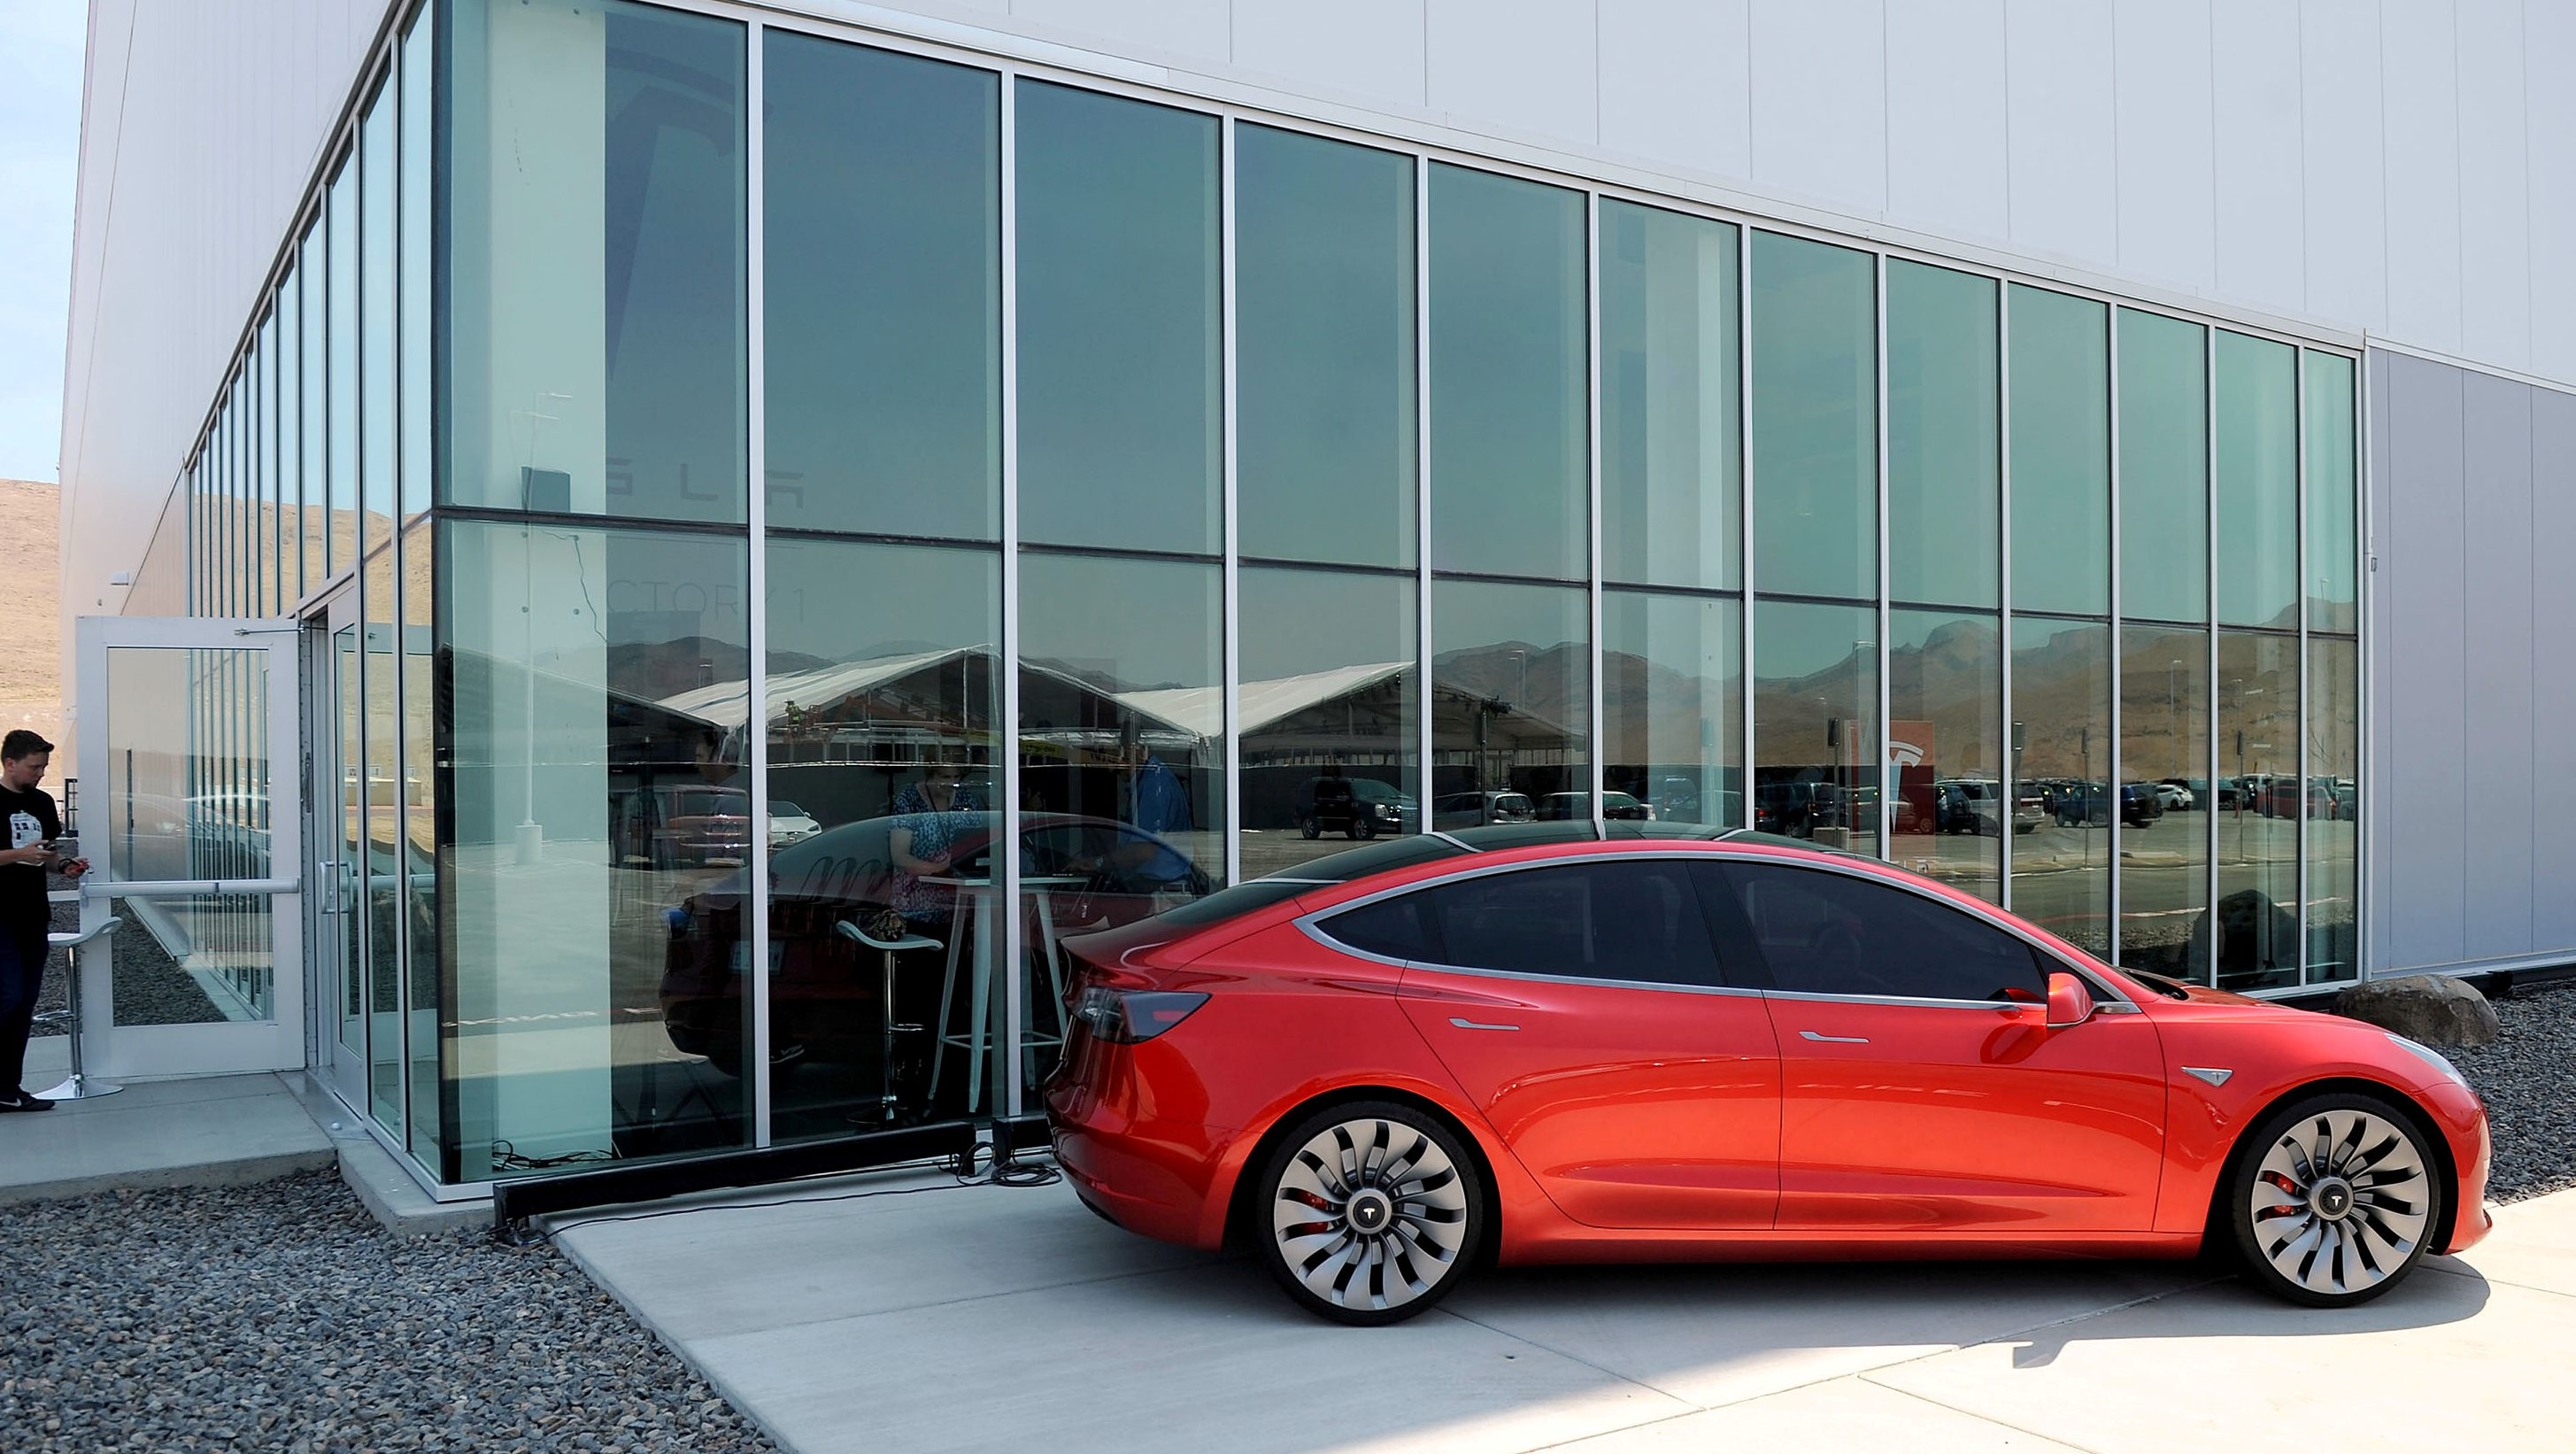 FILE PHOTO: A prototype of the Tesla Model 3 is on display in front of the factory during a media tour of the Tesla Gigafactory which will produce batteries for the electric carmaker in Sparks, Nevada, U.S. July 26, 2016. REUTERS/James Glover II/File Photo - RTS1459H